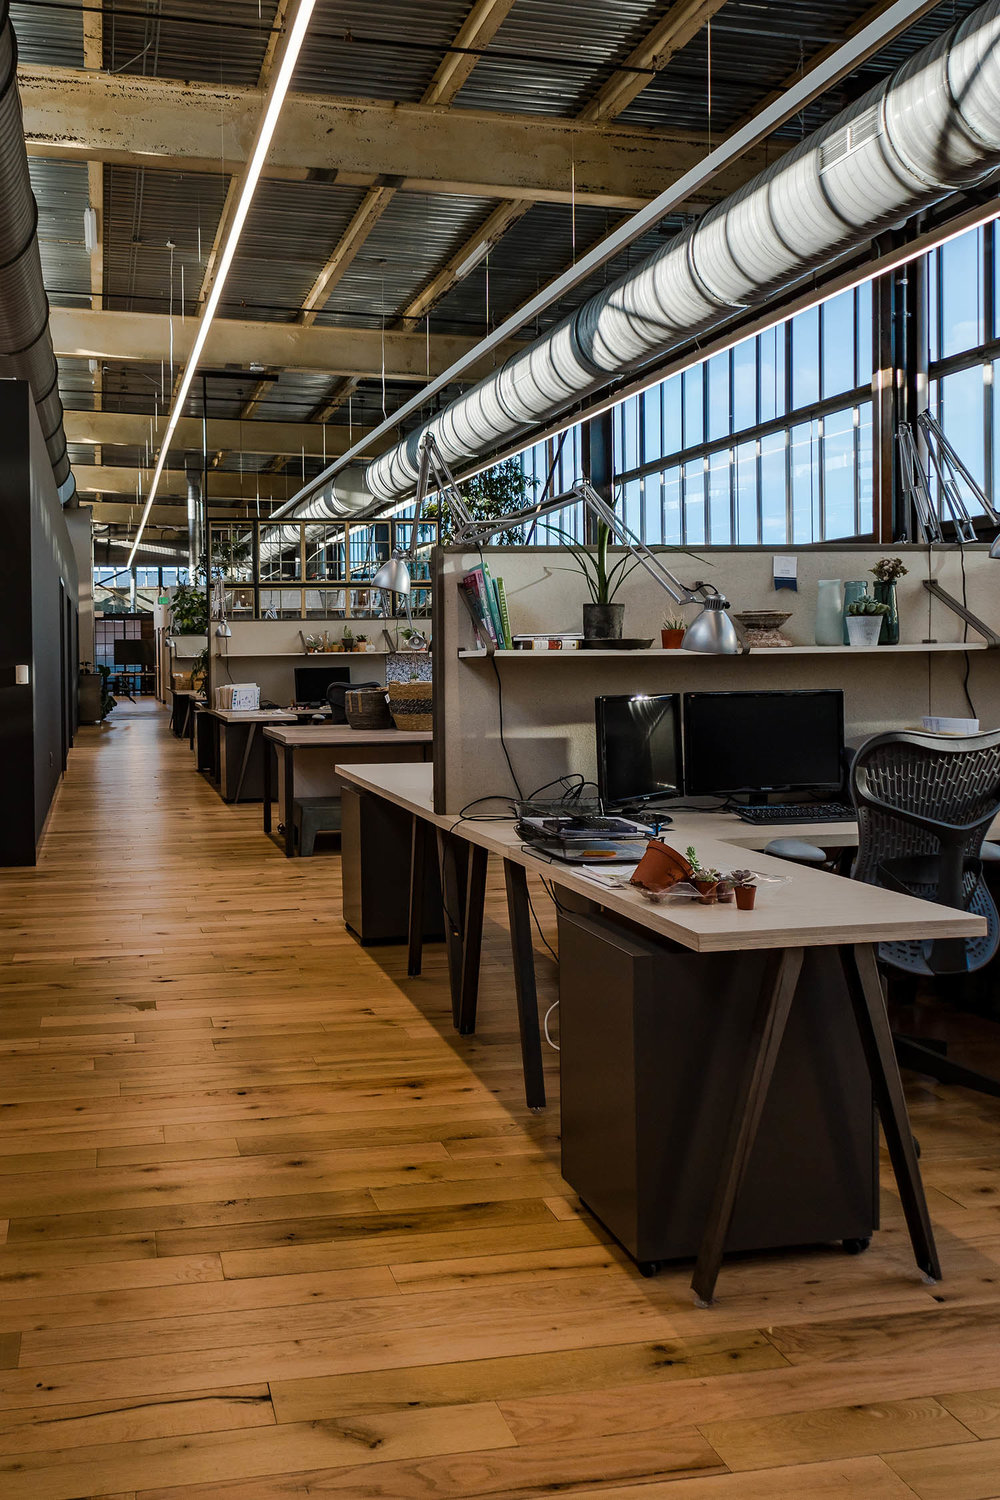 Terrain workspaces, designed in collaboration with NewStudio Architecture, for the Navy Yard Building 18 Annex